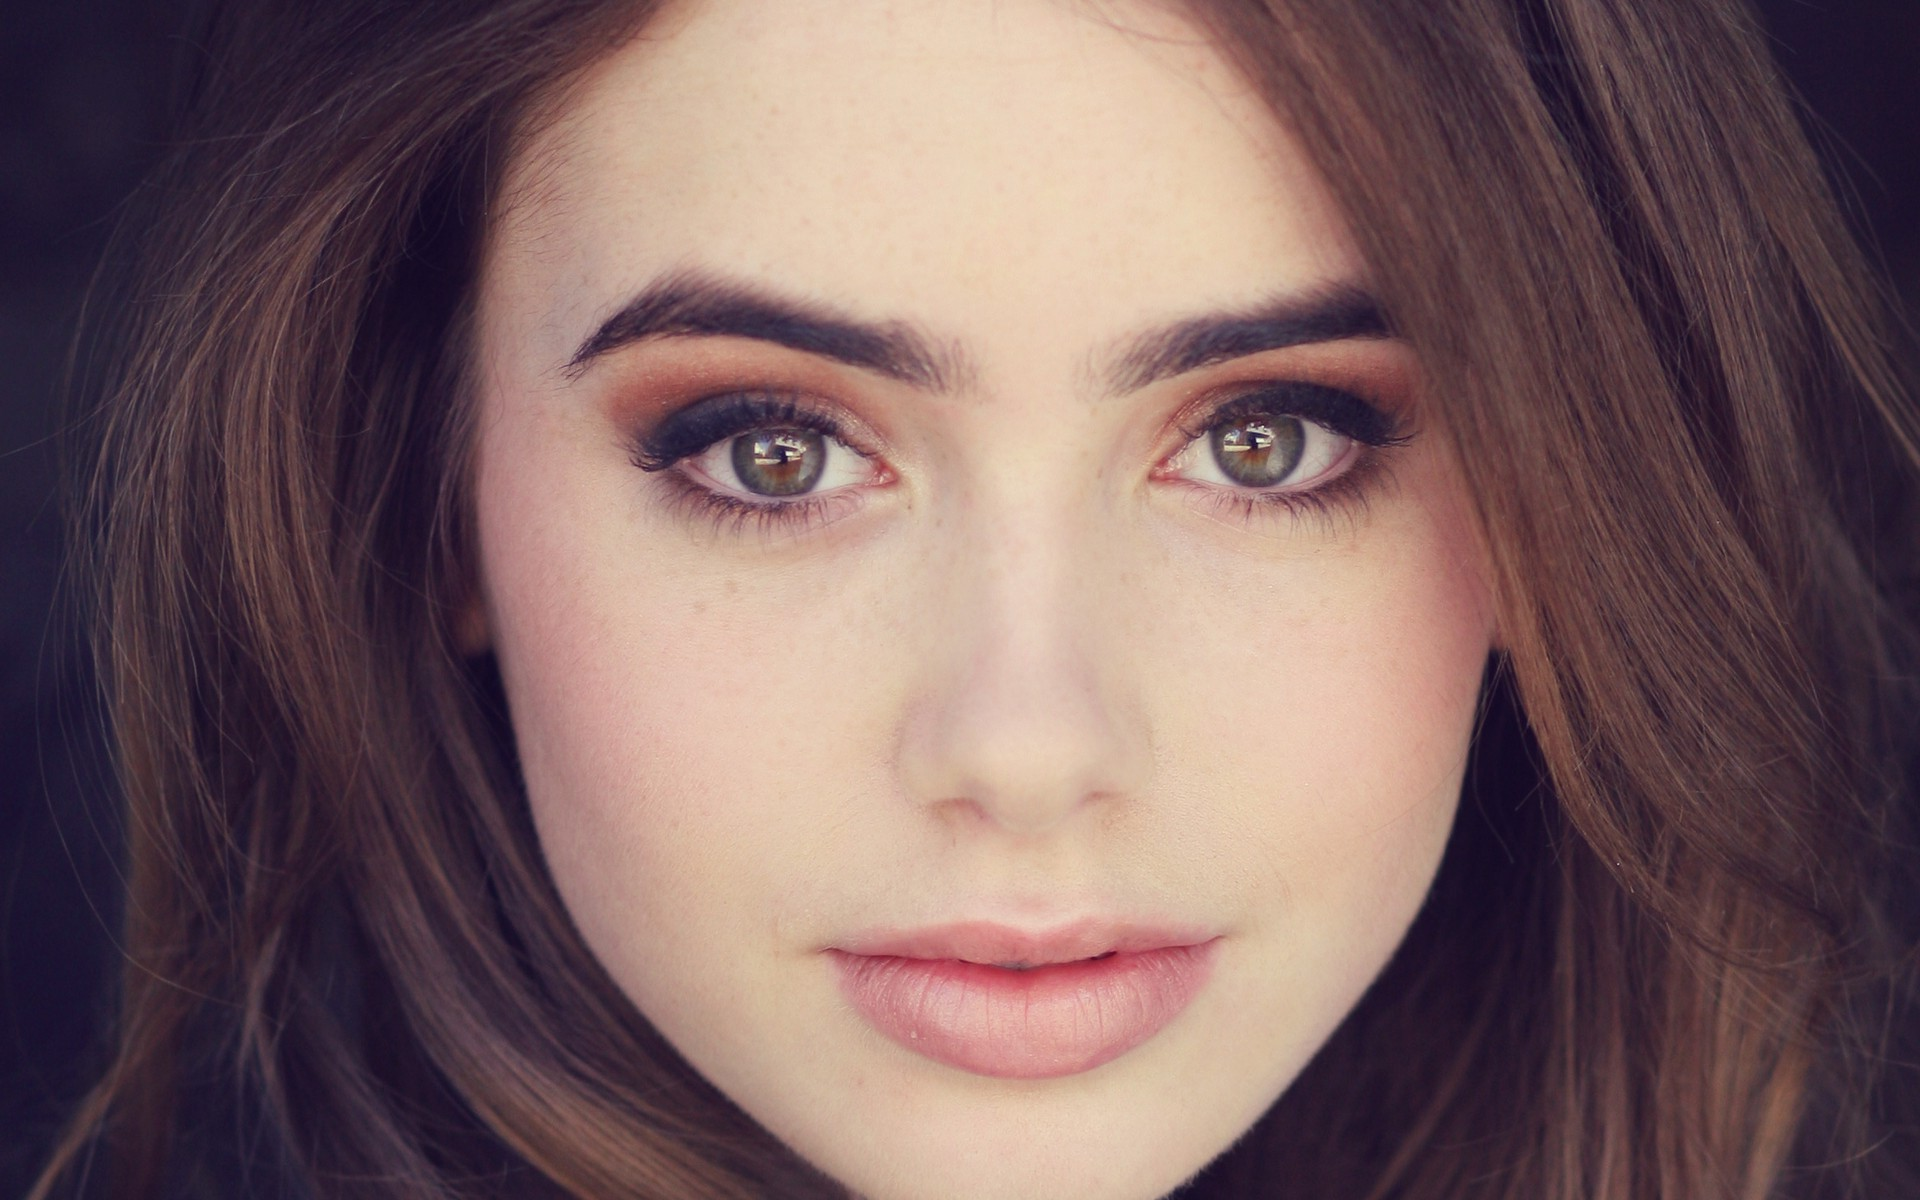 lily collins wallpapers - wallpaper, high definition, high quality